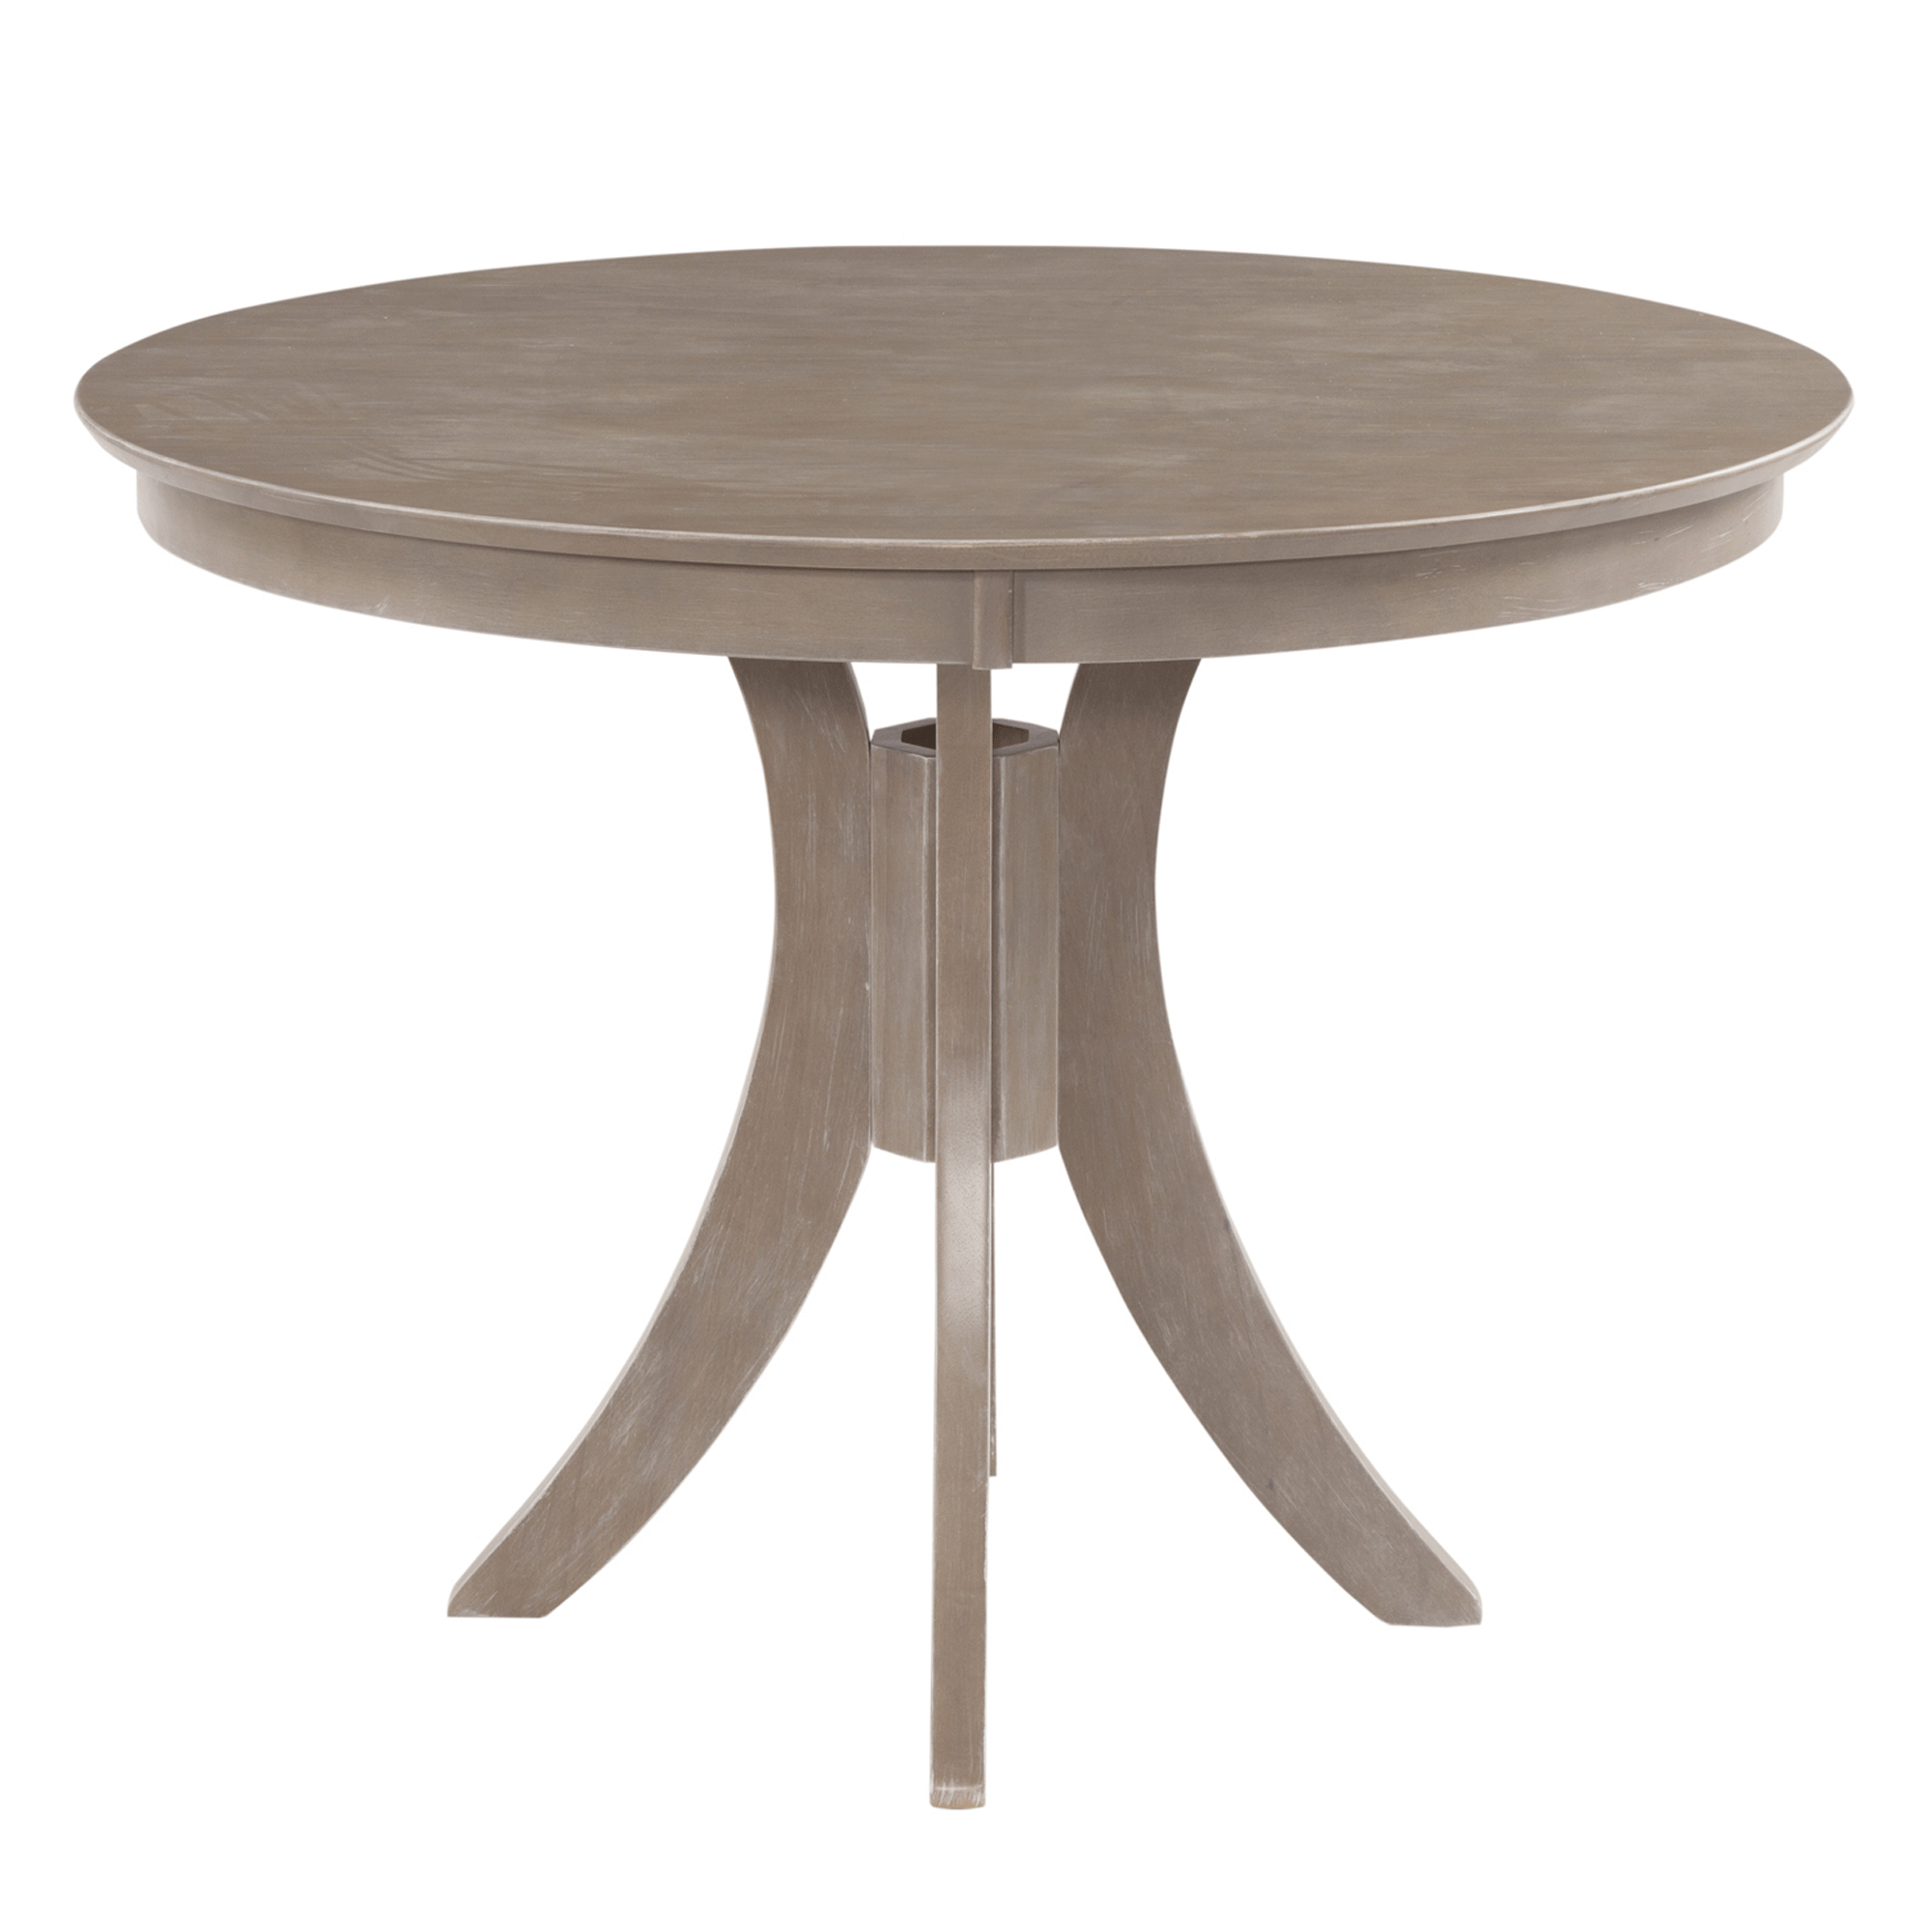 Cosmopolitan Weathered Grey Dining Room Pedestal Table 48 In 2017 Corvena 48'' Pedestal Dining Tables (View 8 of 15)